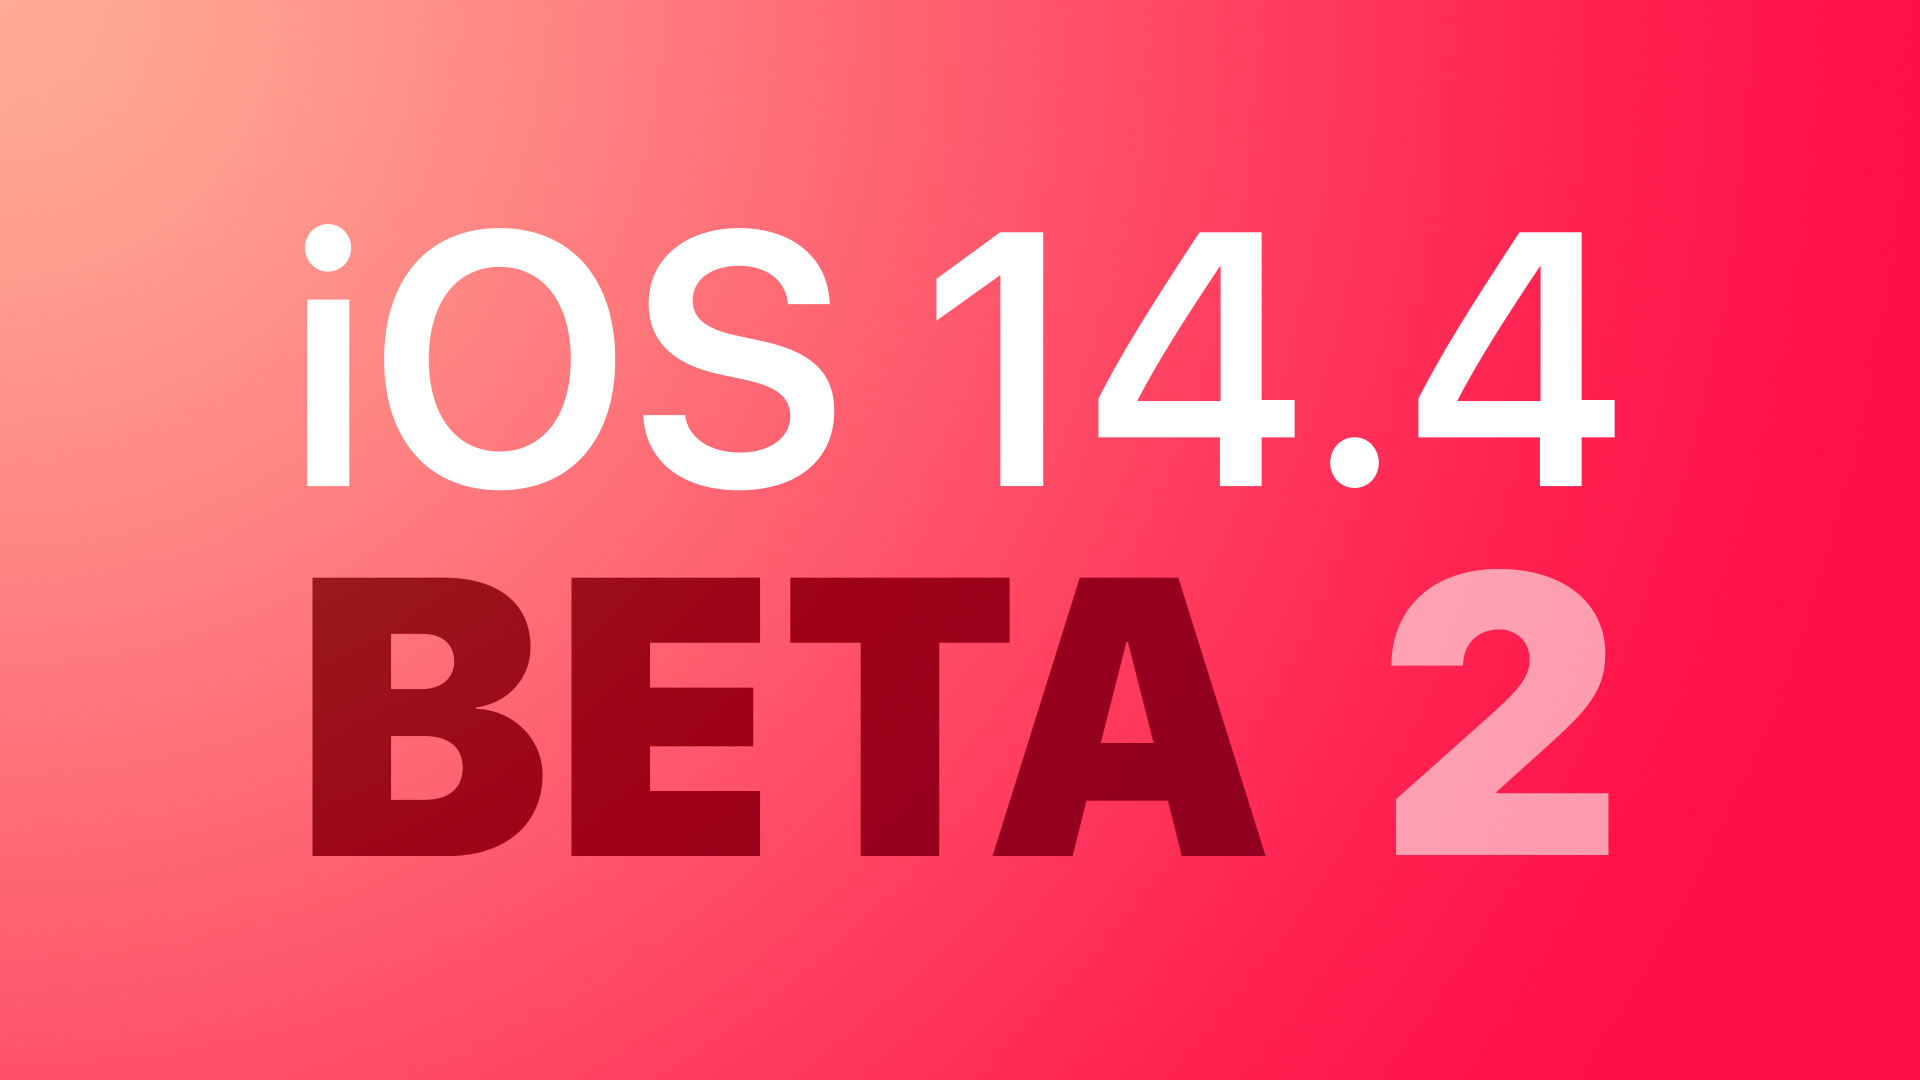 Apple Seeds Second Betas of iOS 14.4 and iPadOS 14.4 to Developers [Update: Public Beta Available]